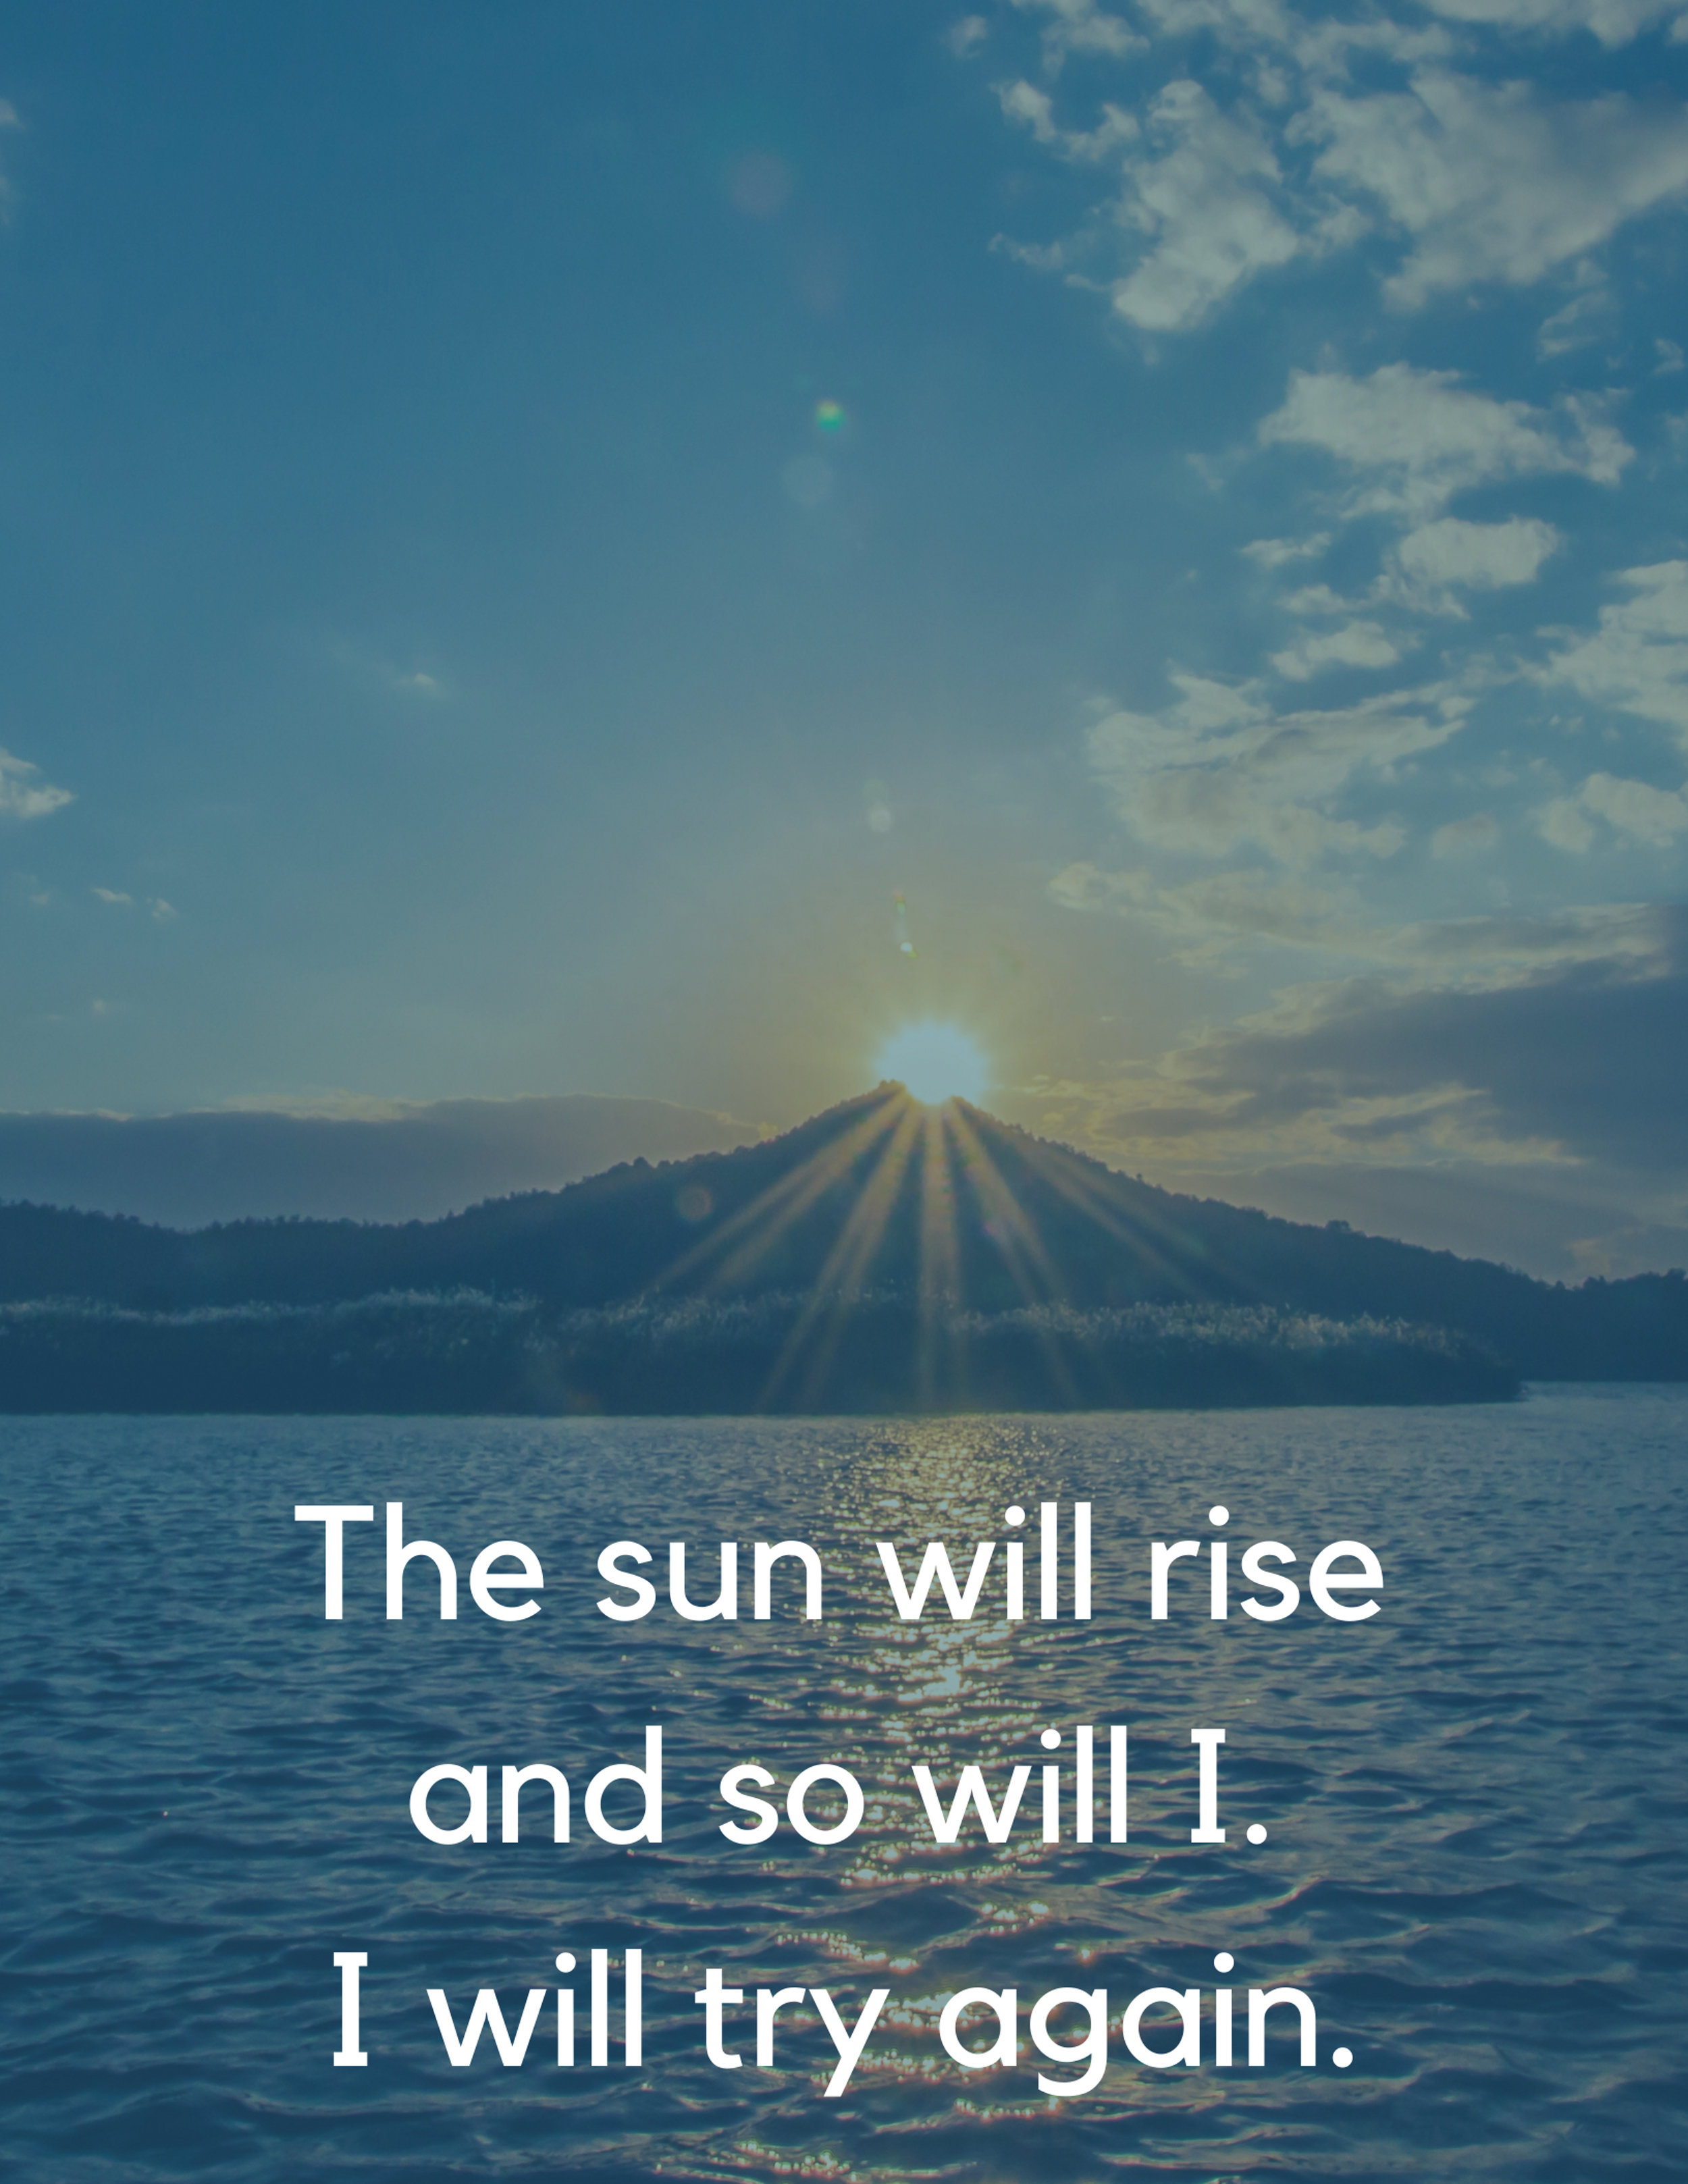 The sun will rise and so will I - I will try again.jpg